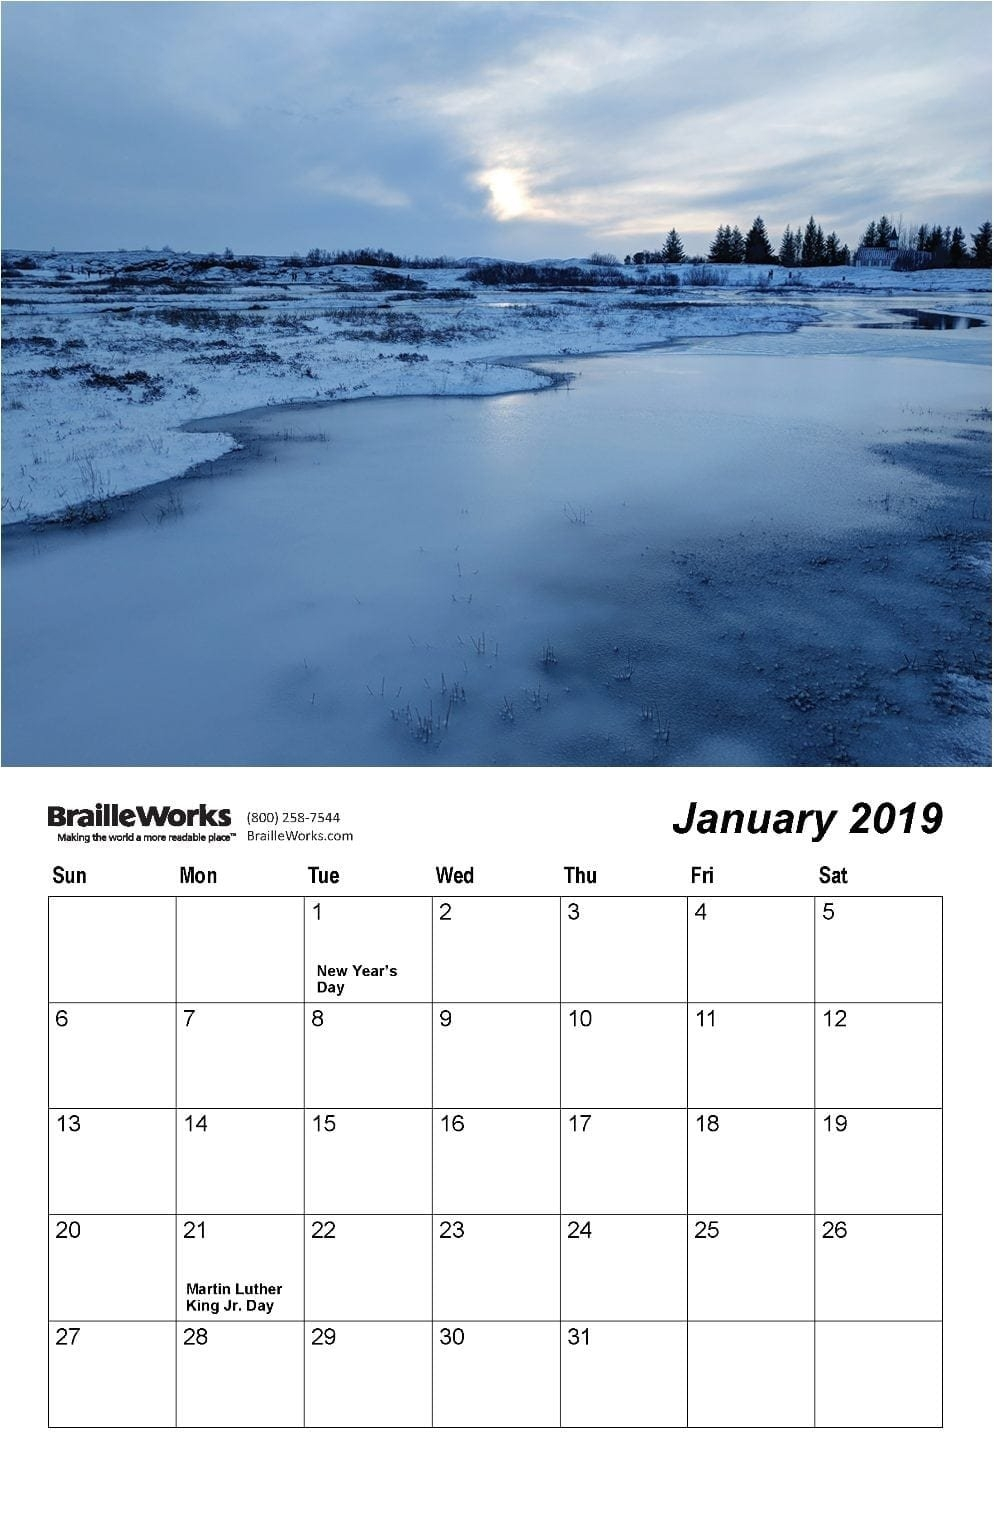 Braille Calendars - Attractive And Accessible - Braille Works Indiana U Calendar 2019